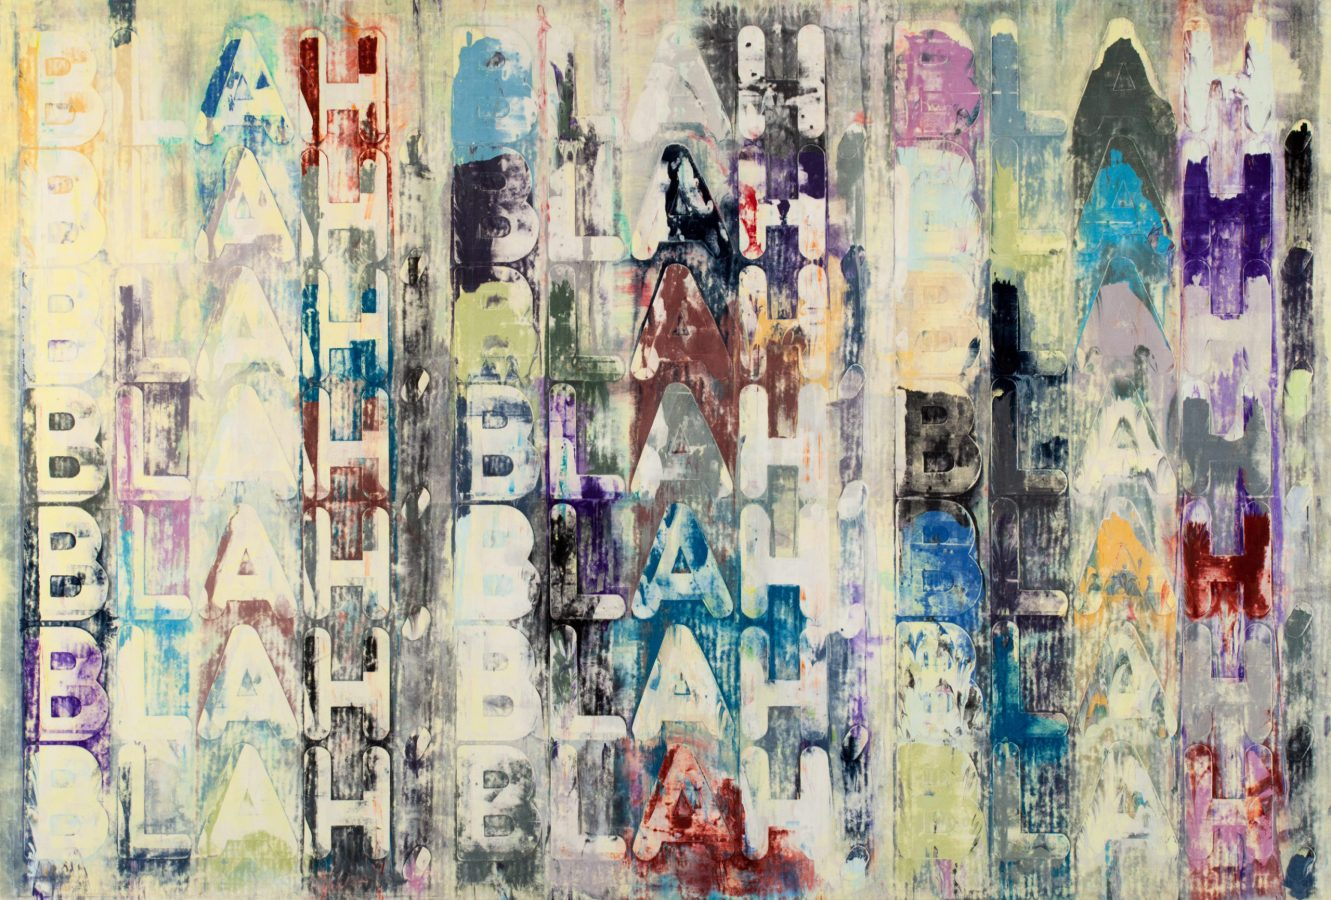 Painting of the word blah repeated multiple times in different colors